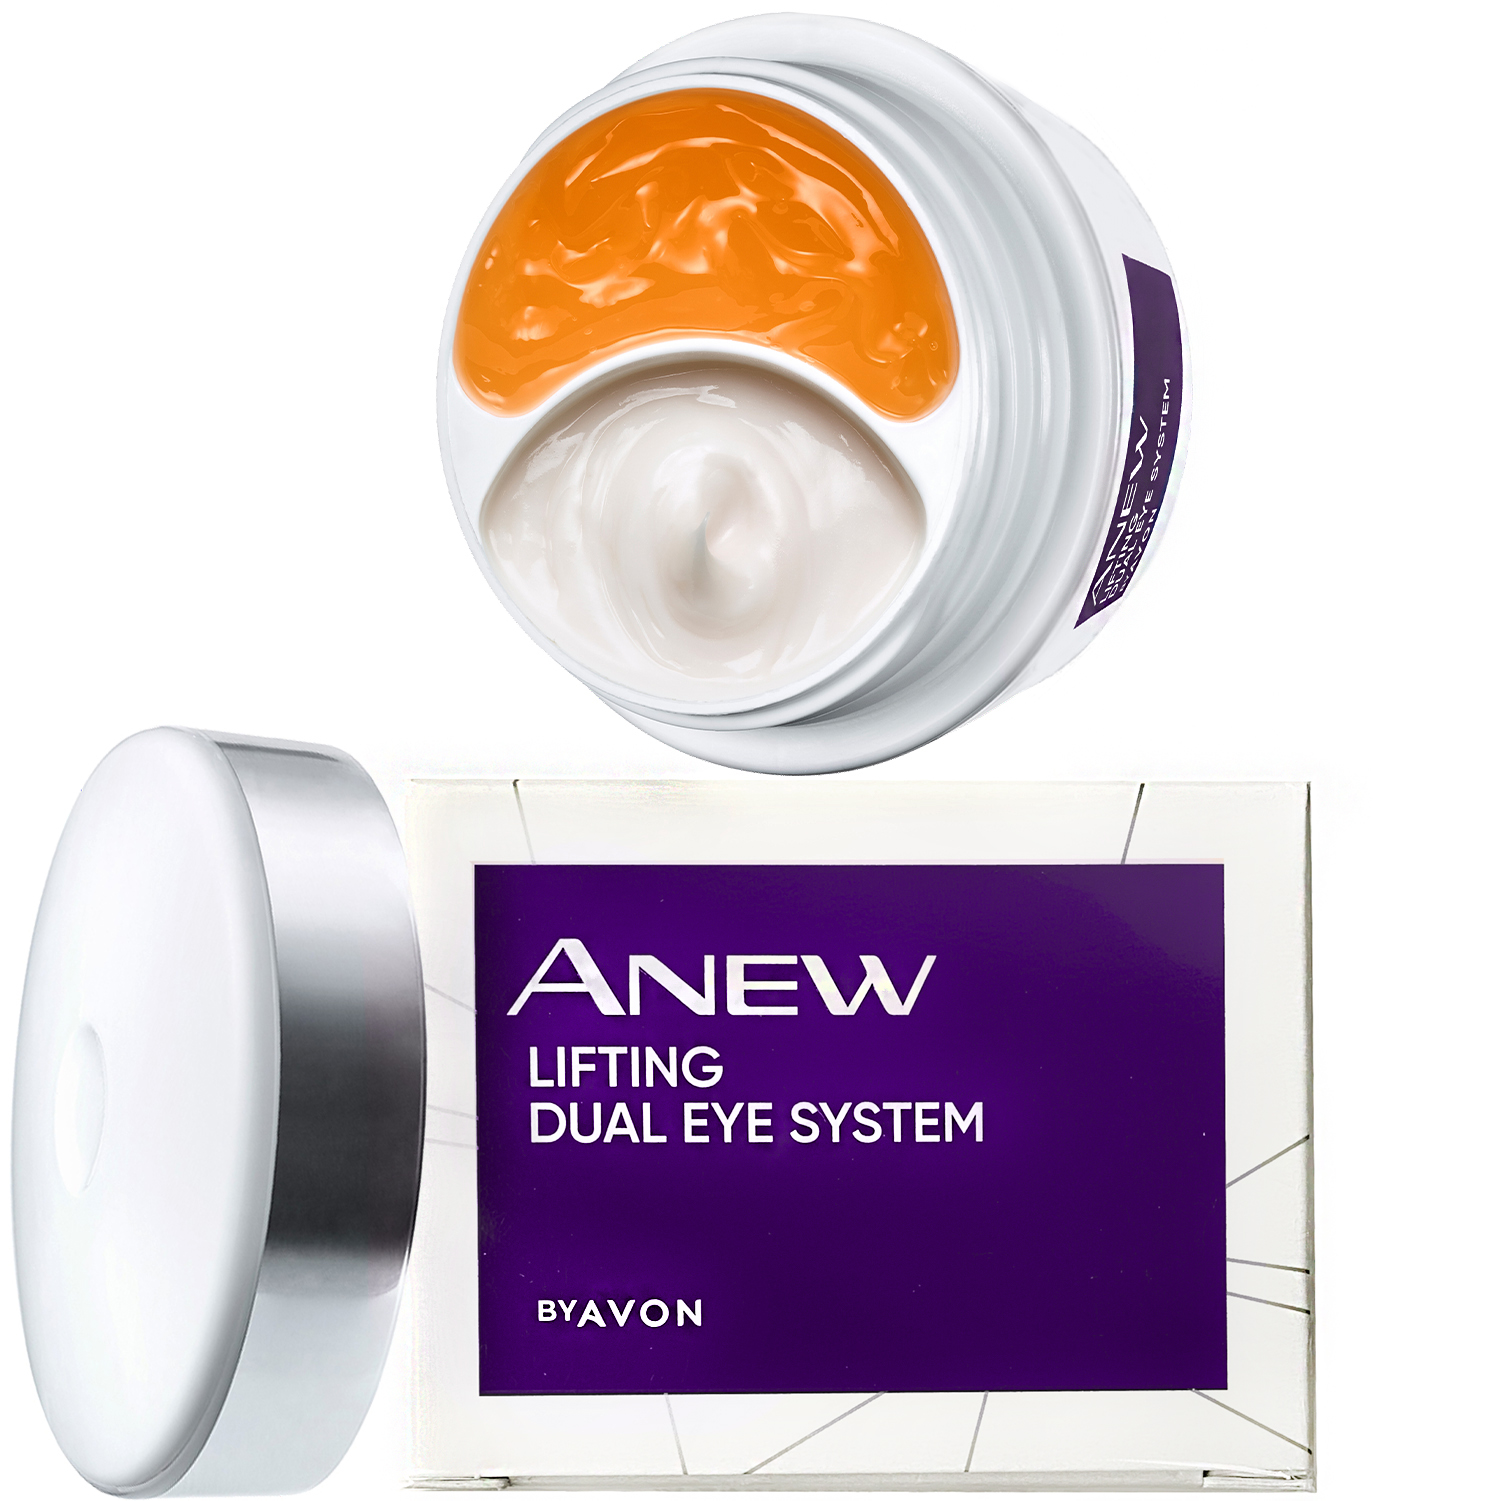 Anew Lifting Dual Eye System by AVON